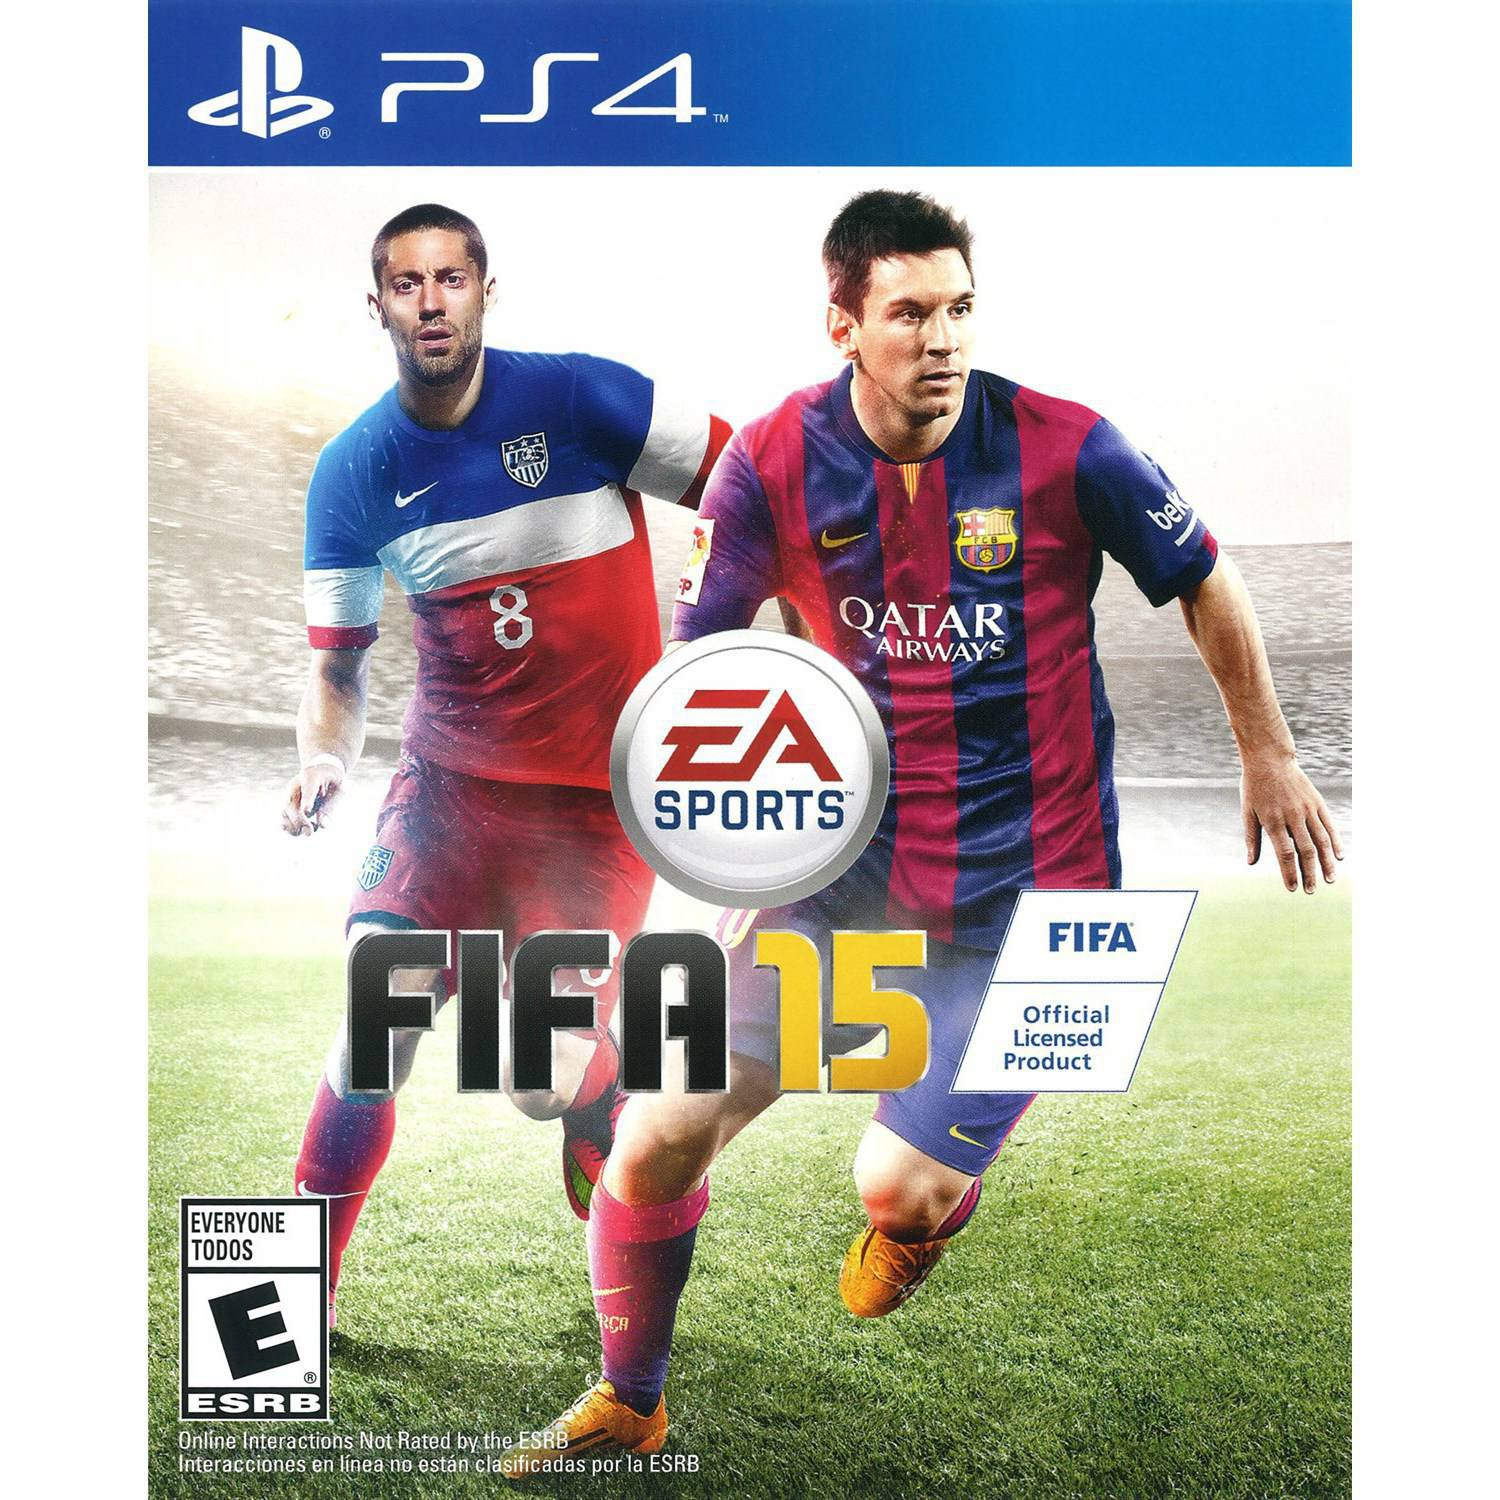 FIFA 15 (PS4) - Pre-Owned